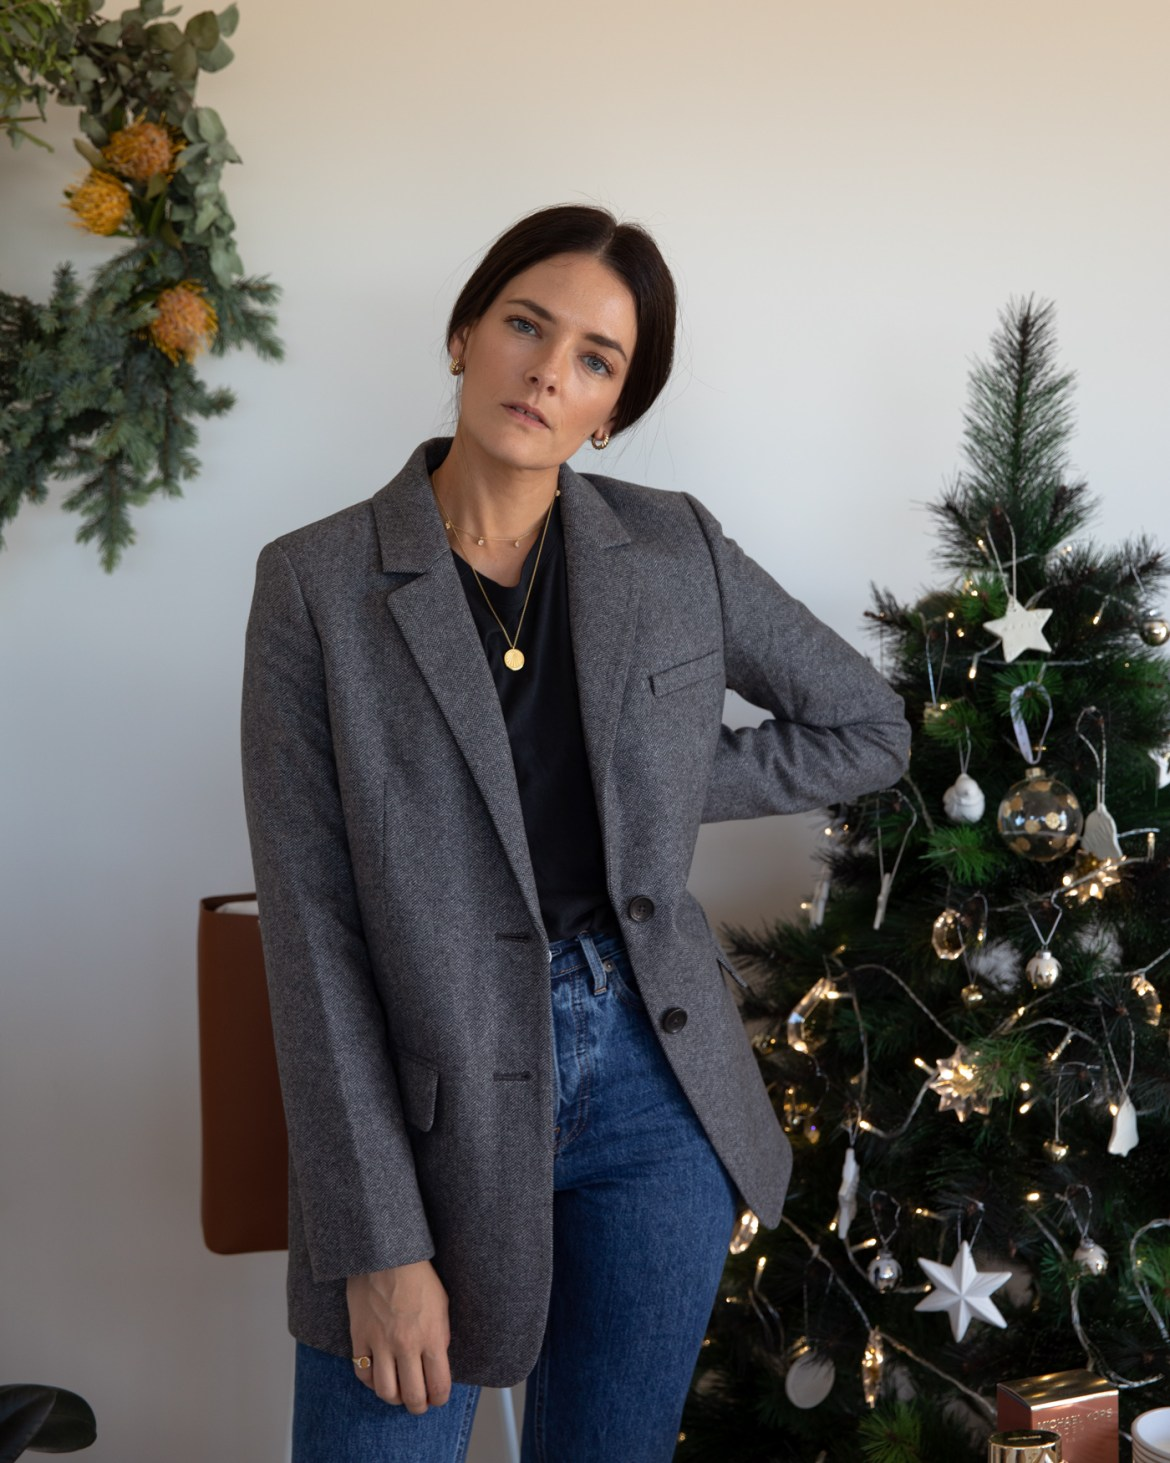 best-sellers from Everlane to gift for Christmas. The oversized blazer